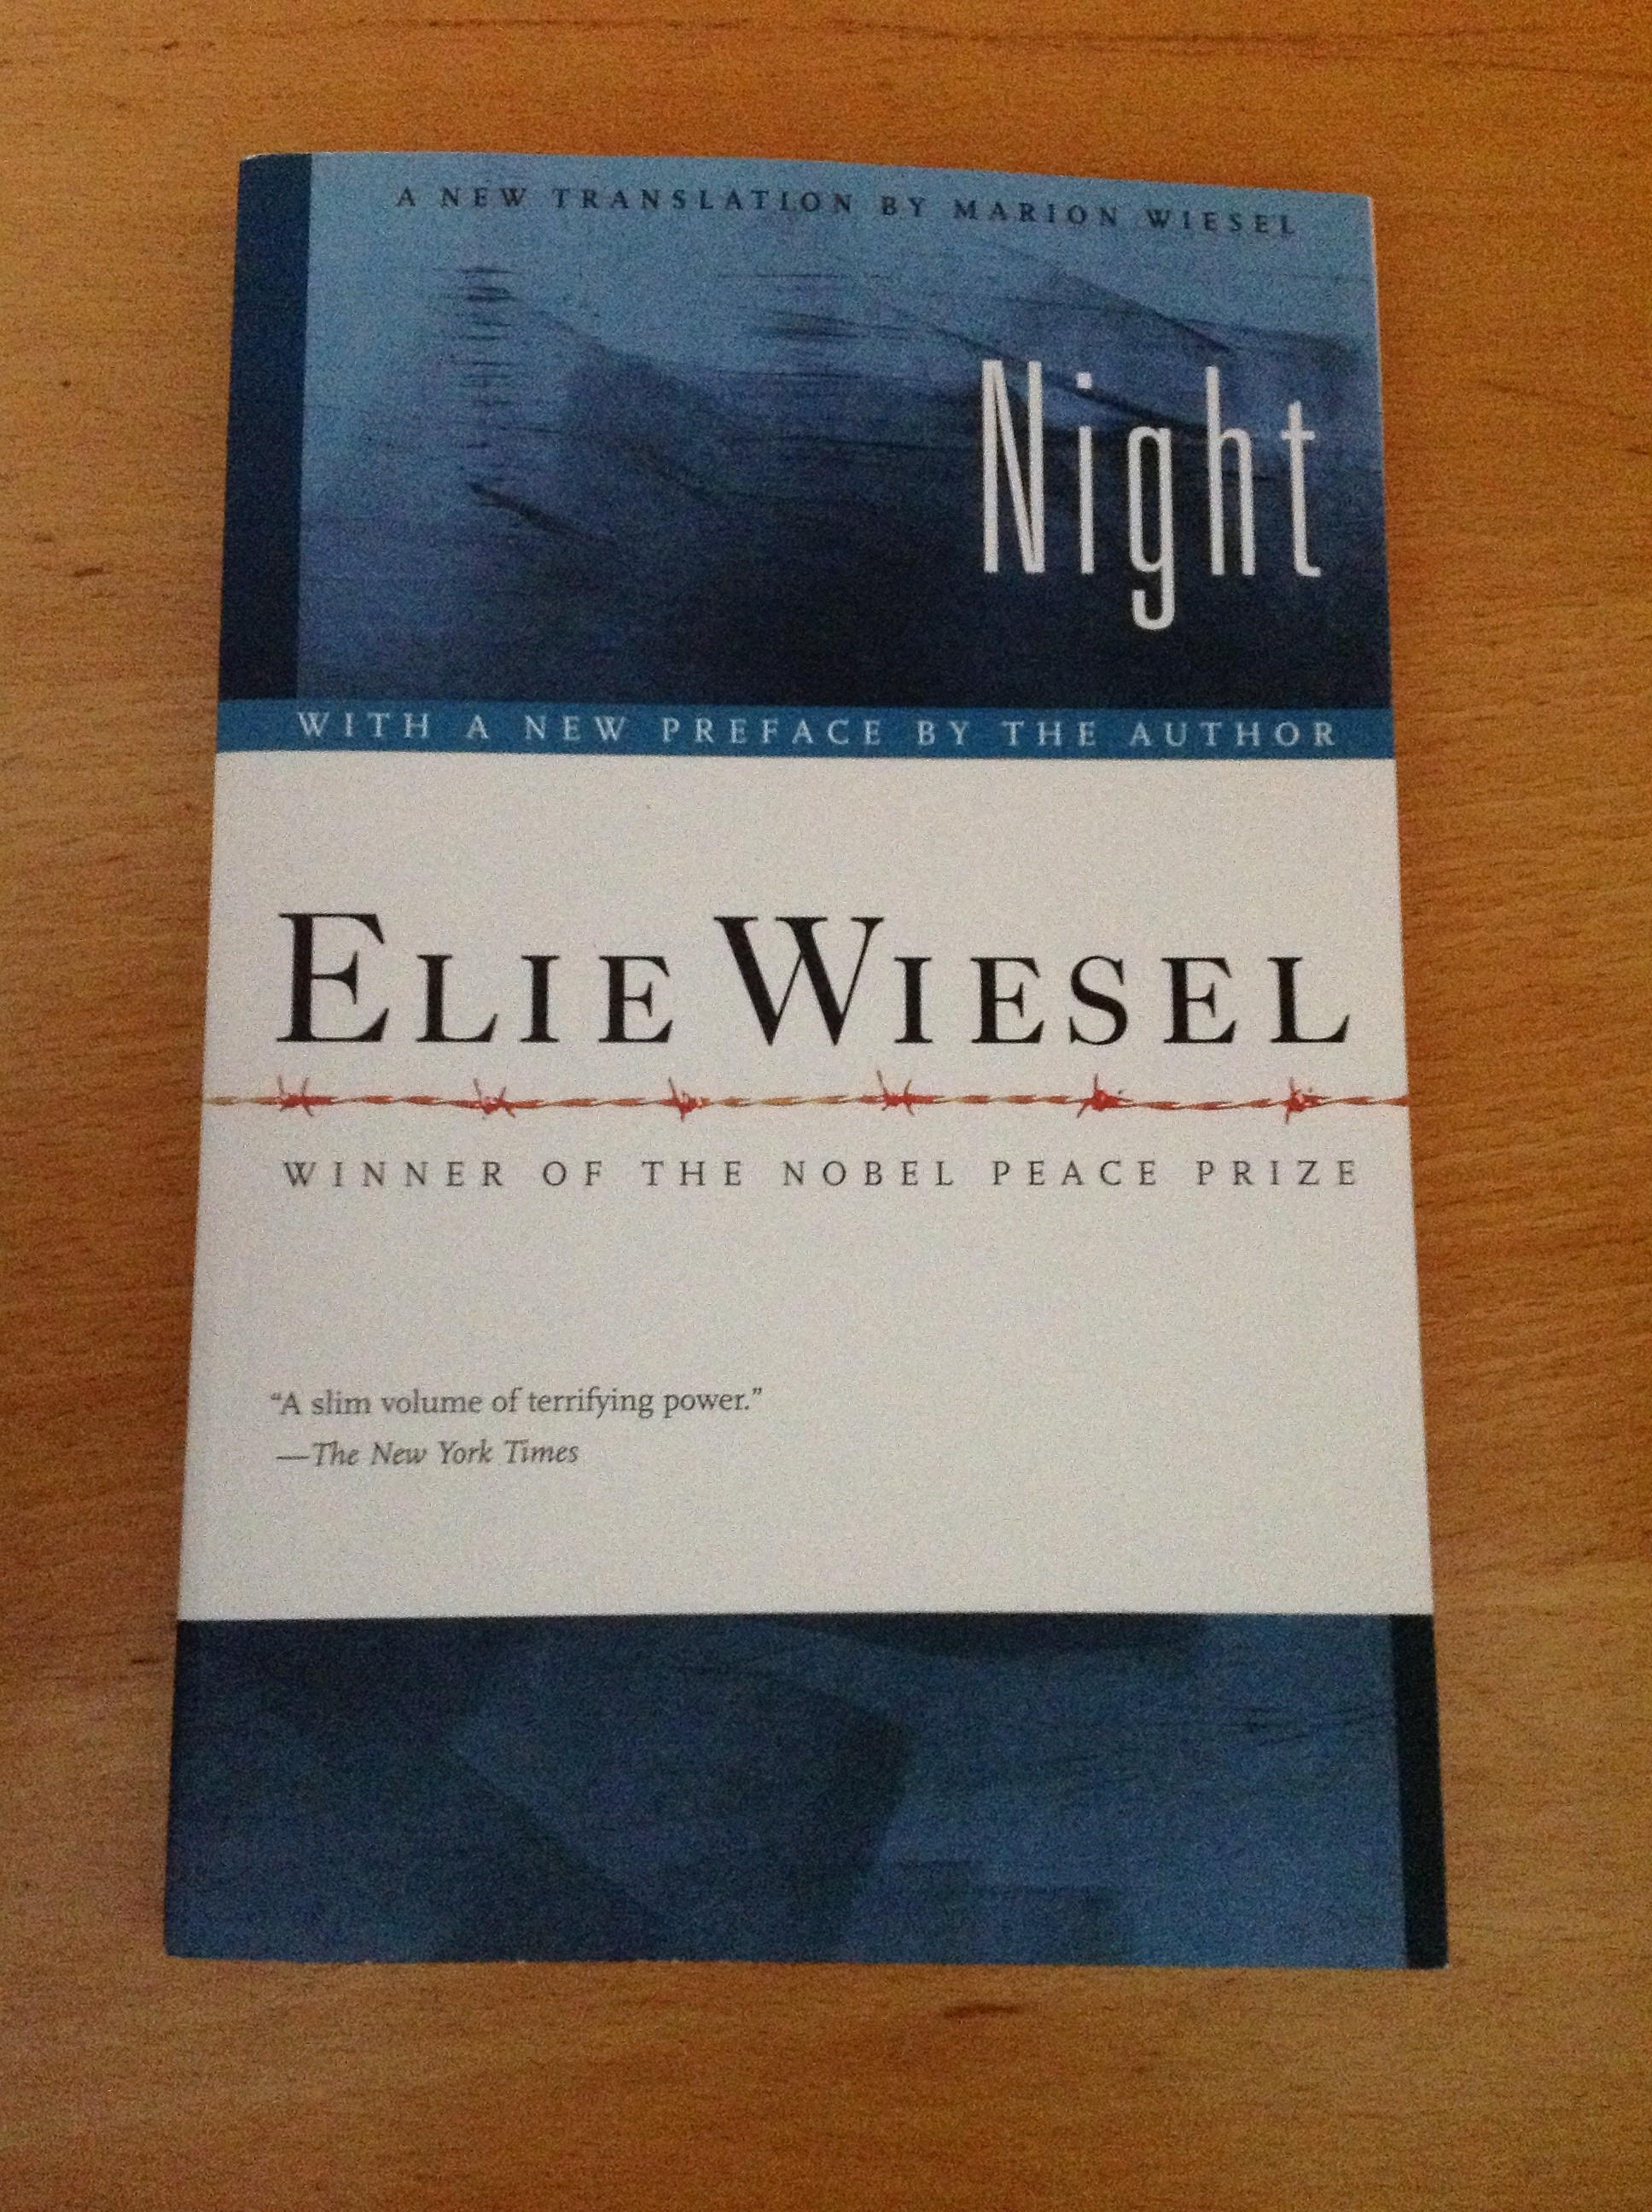 analysis of night by elie wiesel About night by elie wiesel: the gripping memoir by nobel laureate elie wiesel is one of the fundamental texts of holocaust reportage and a poetic examination of a young man's loss of faith amid unspeakable acts of inhumanity.